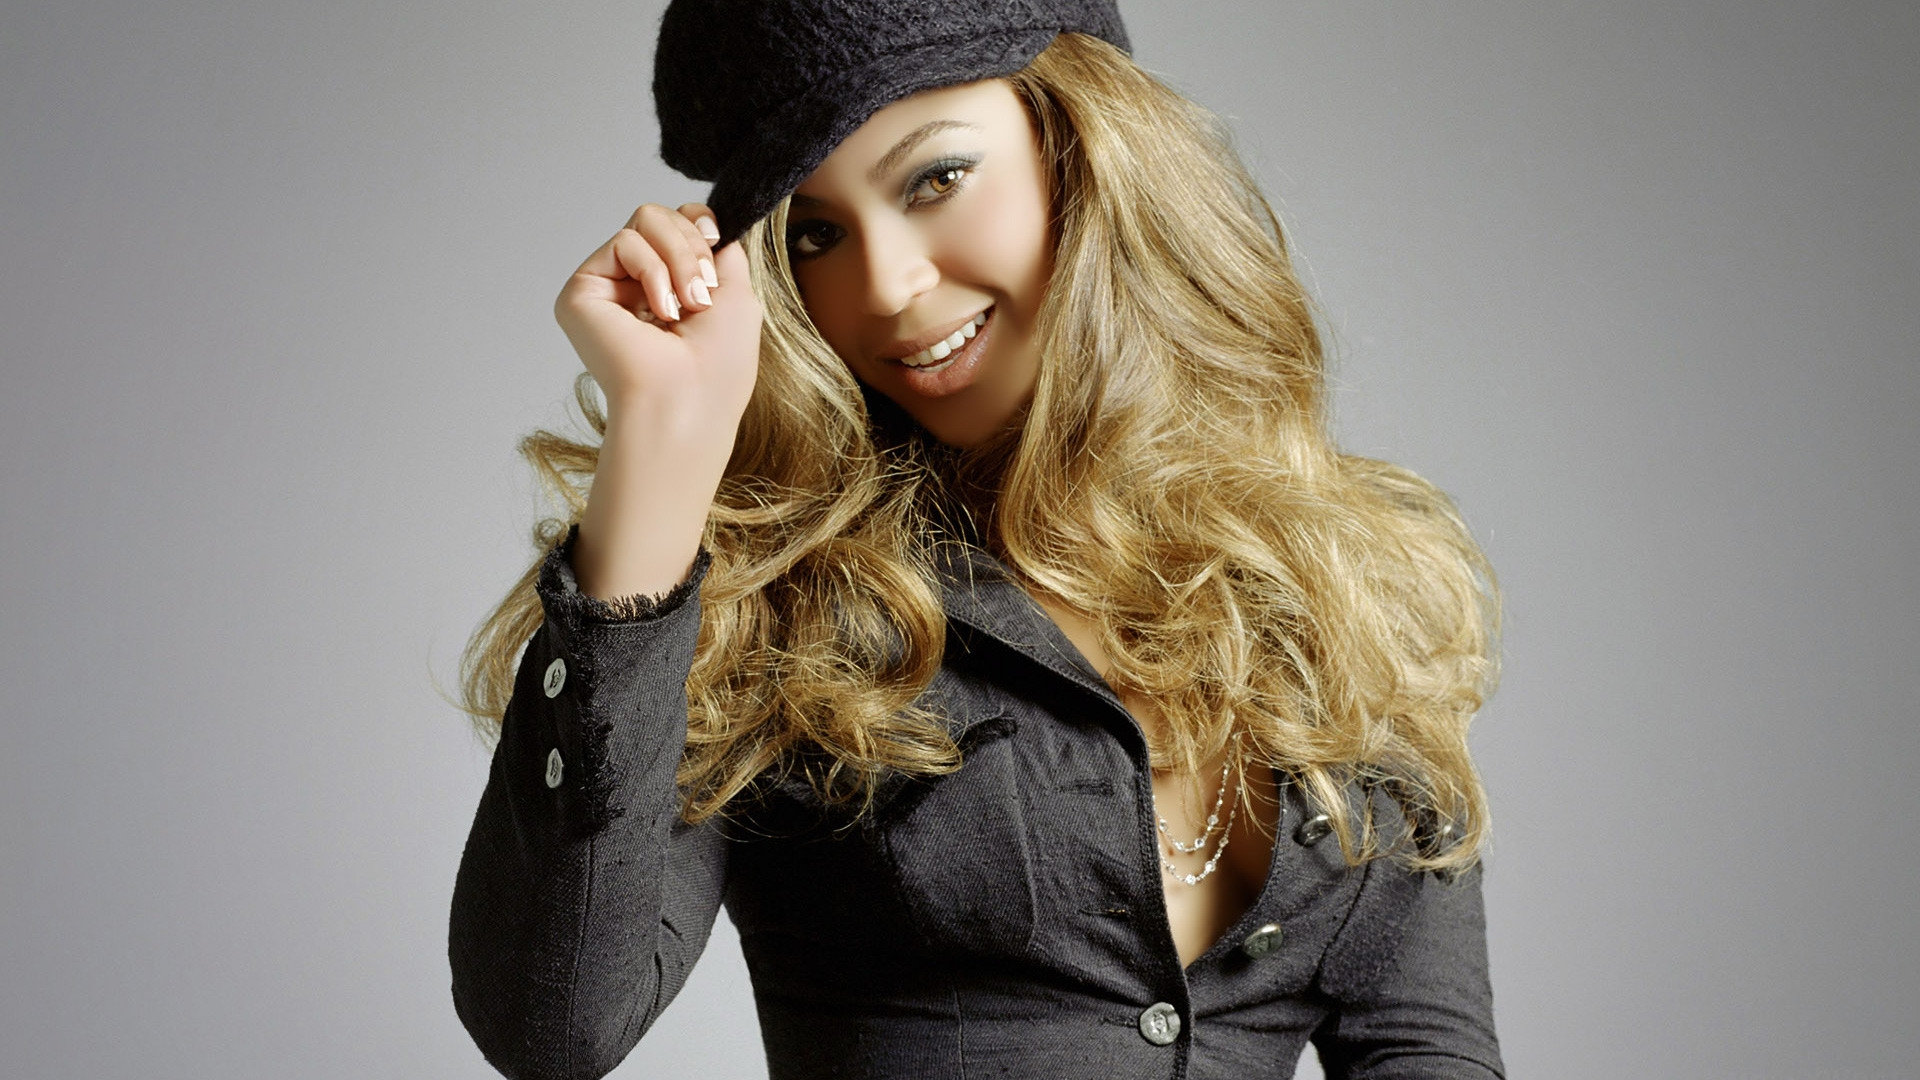 Full HD Wallpaper beyonce long hair hat smile Desktop 1920x1080